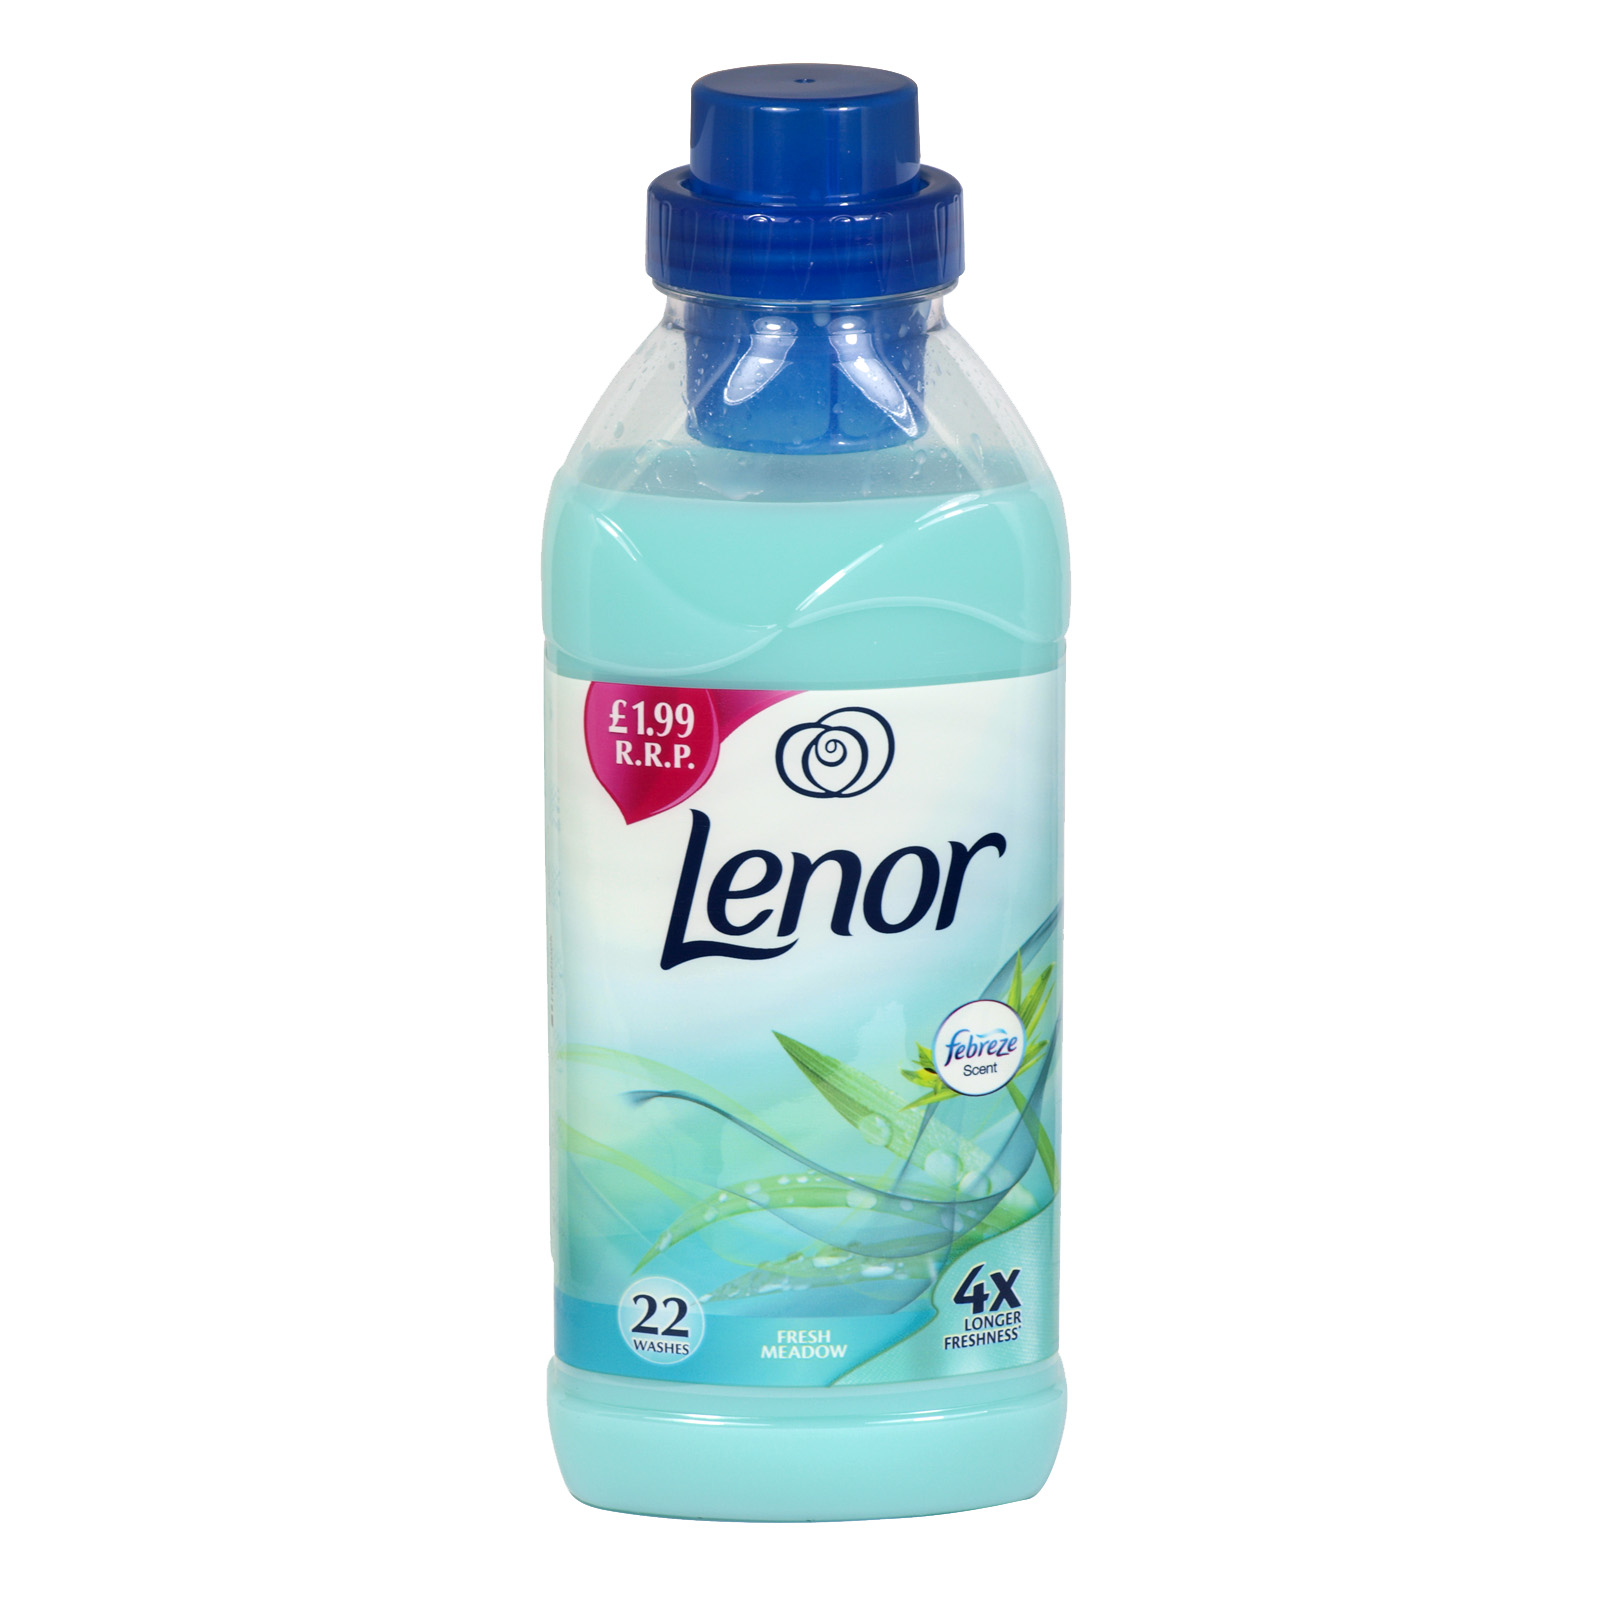 LENOR FABRIC CONCENTRATE 550ML PM?1.99 MEADOW X8